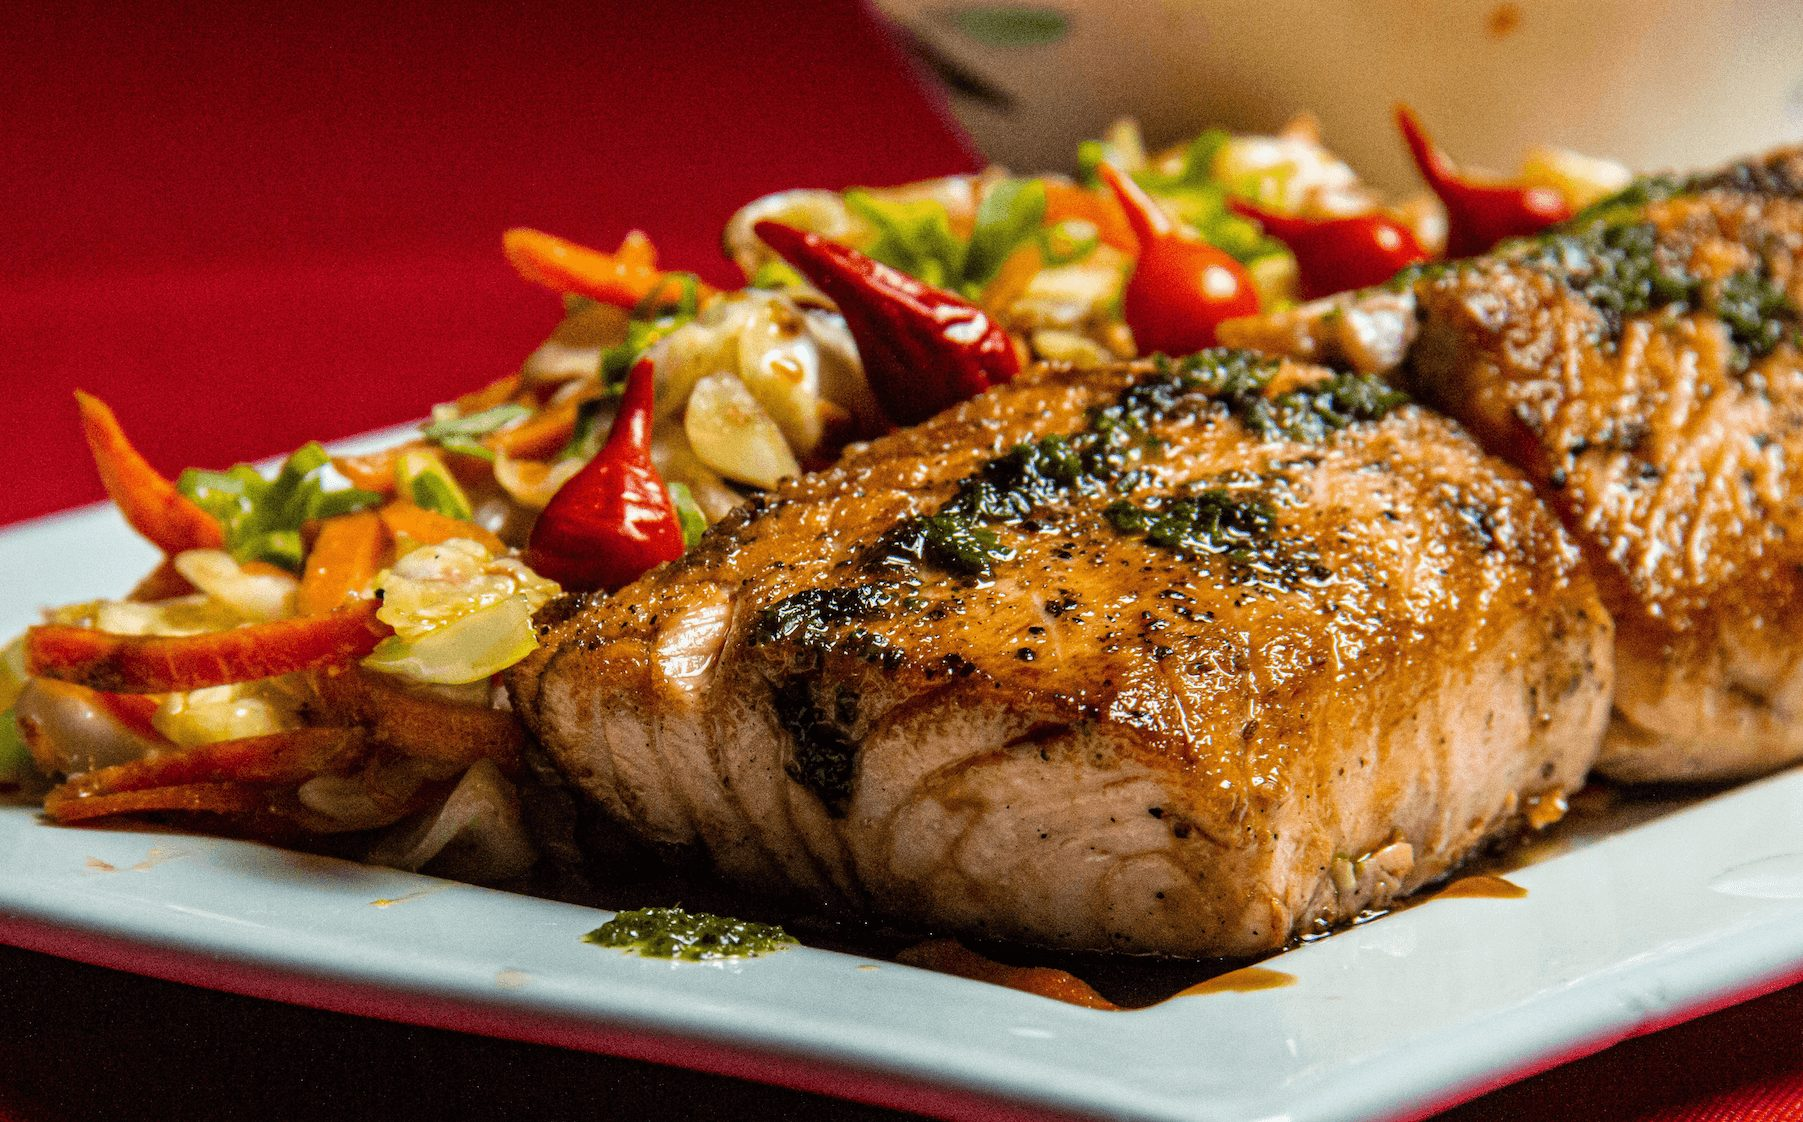 Pangasius with vegetables – Your everyday fish